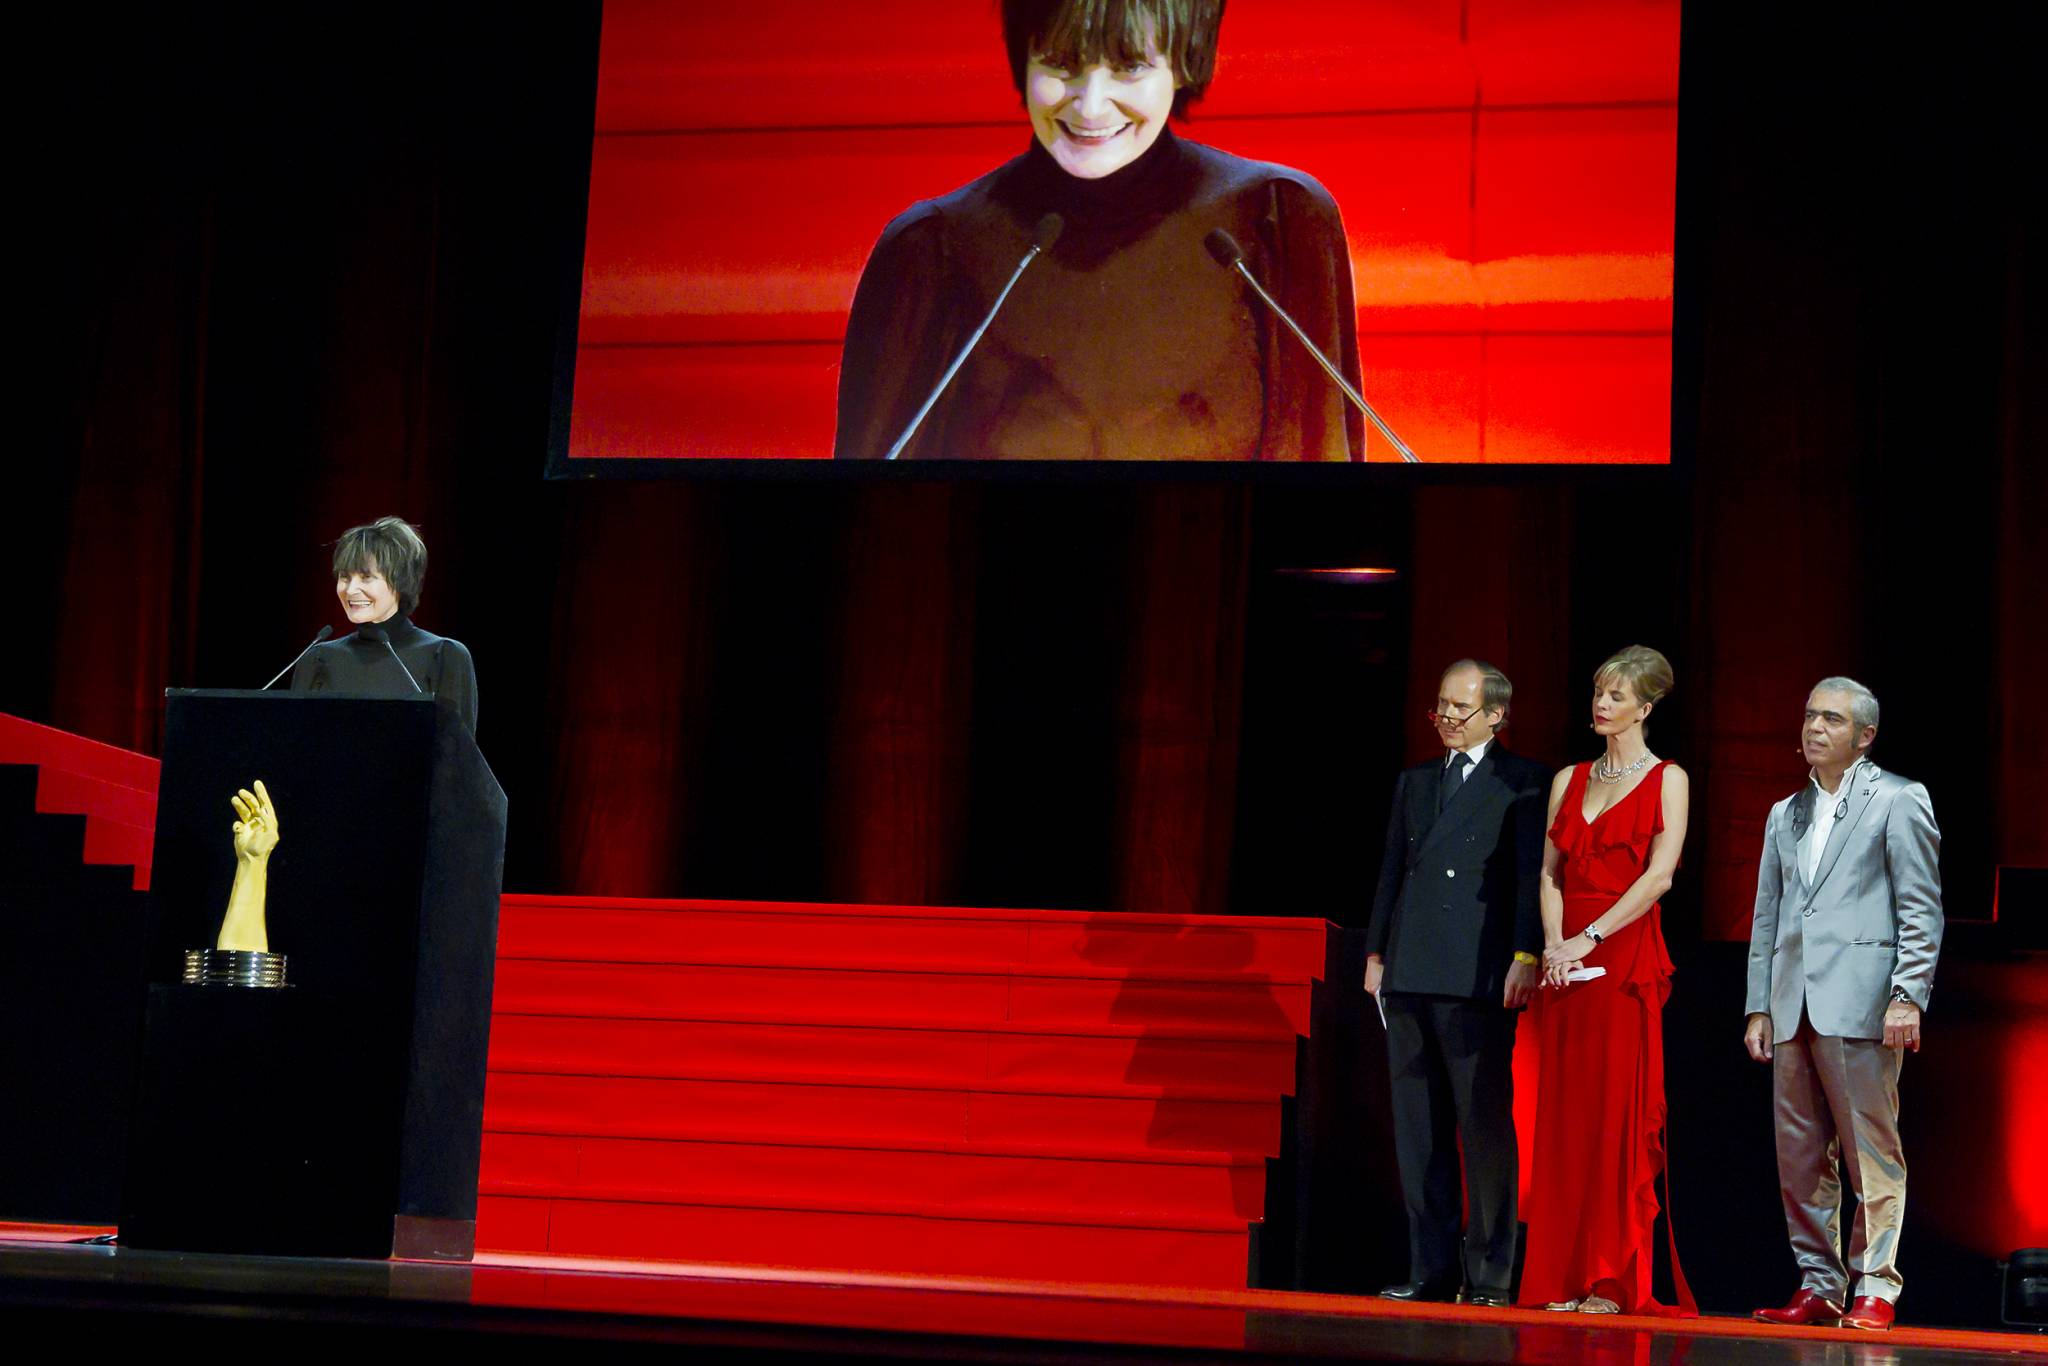 Micheline Calmy Rey, President of the Swiss Confederation, November 19th, 2011